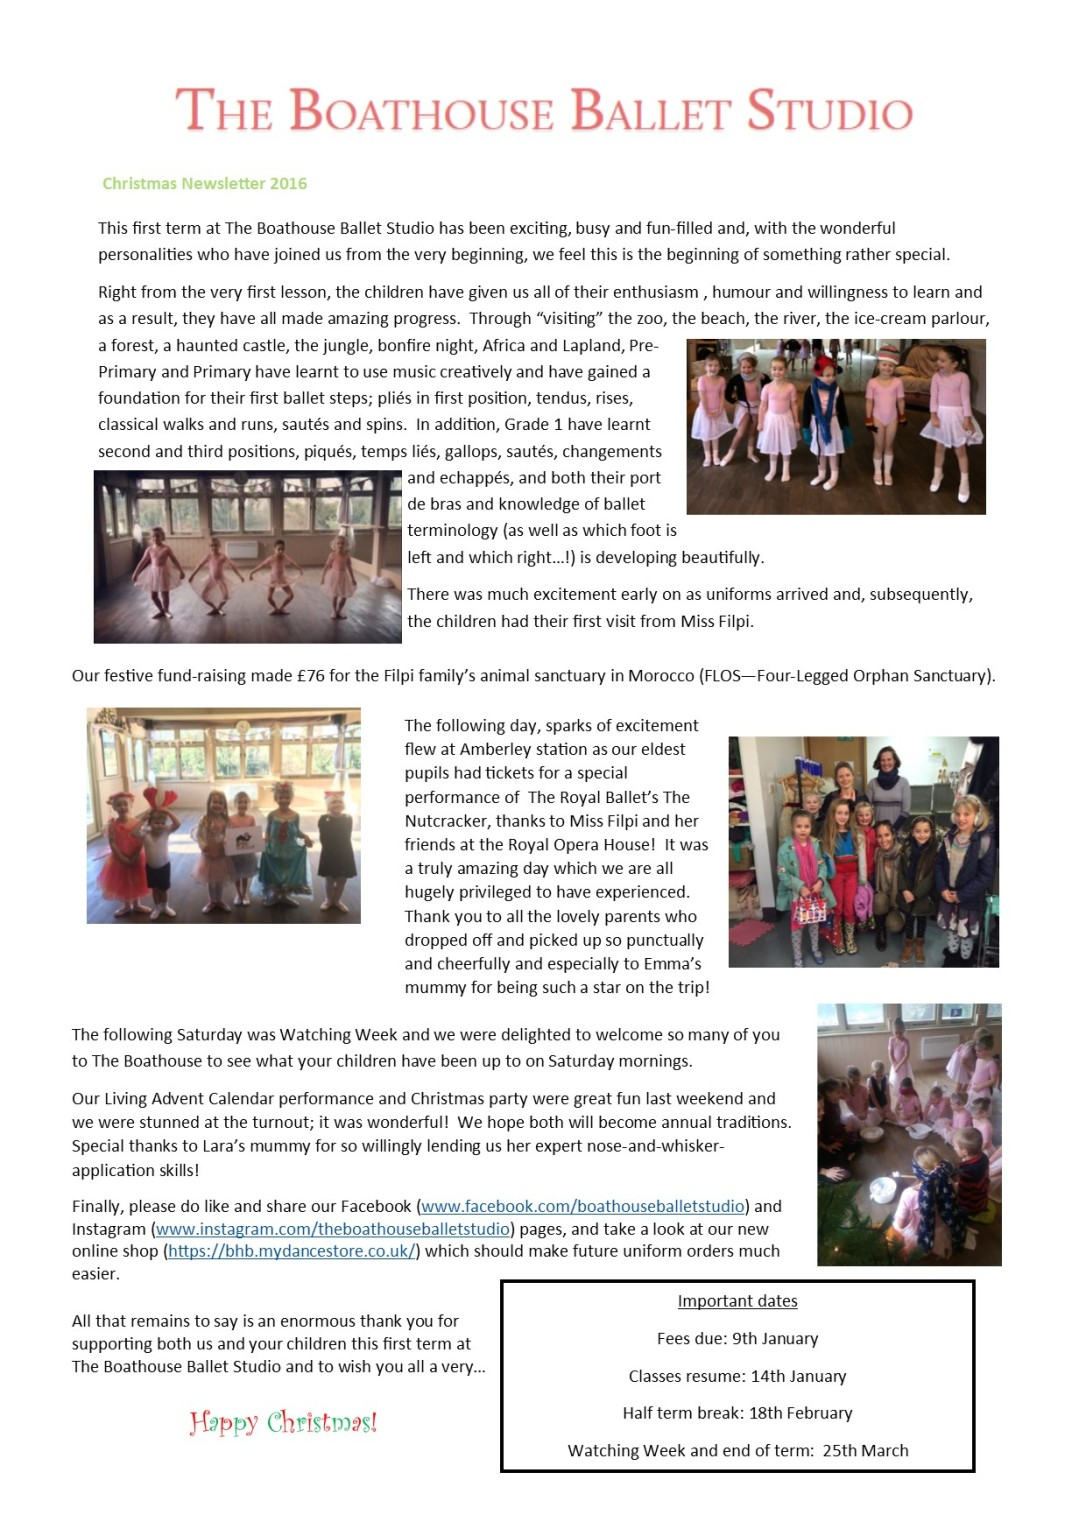 Newsletter Christmas term 2016 as image